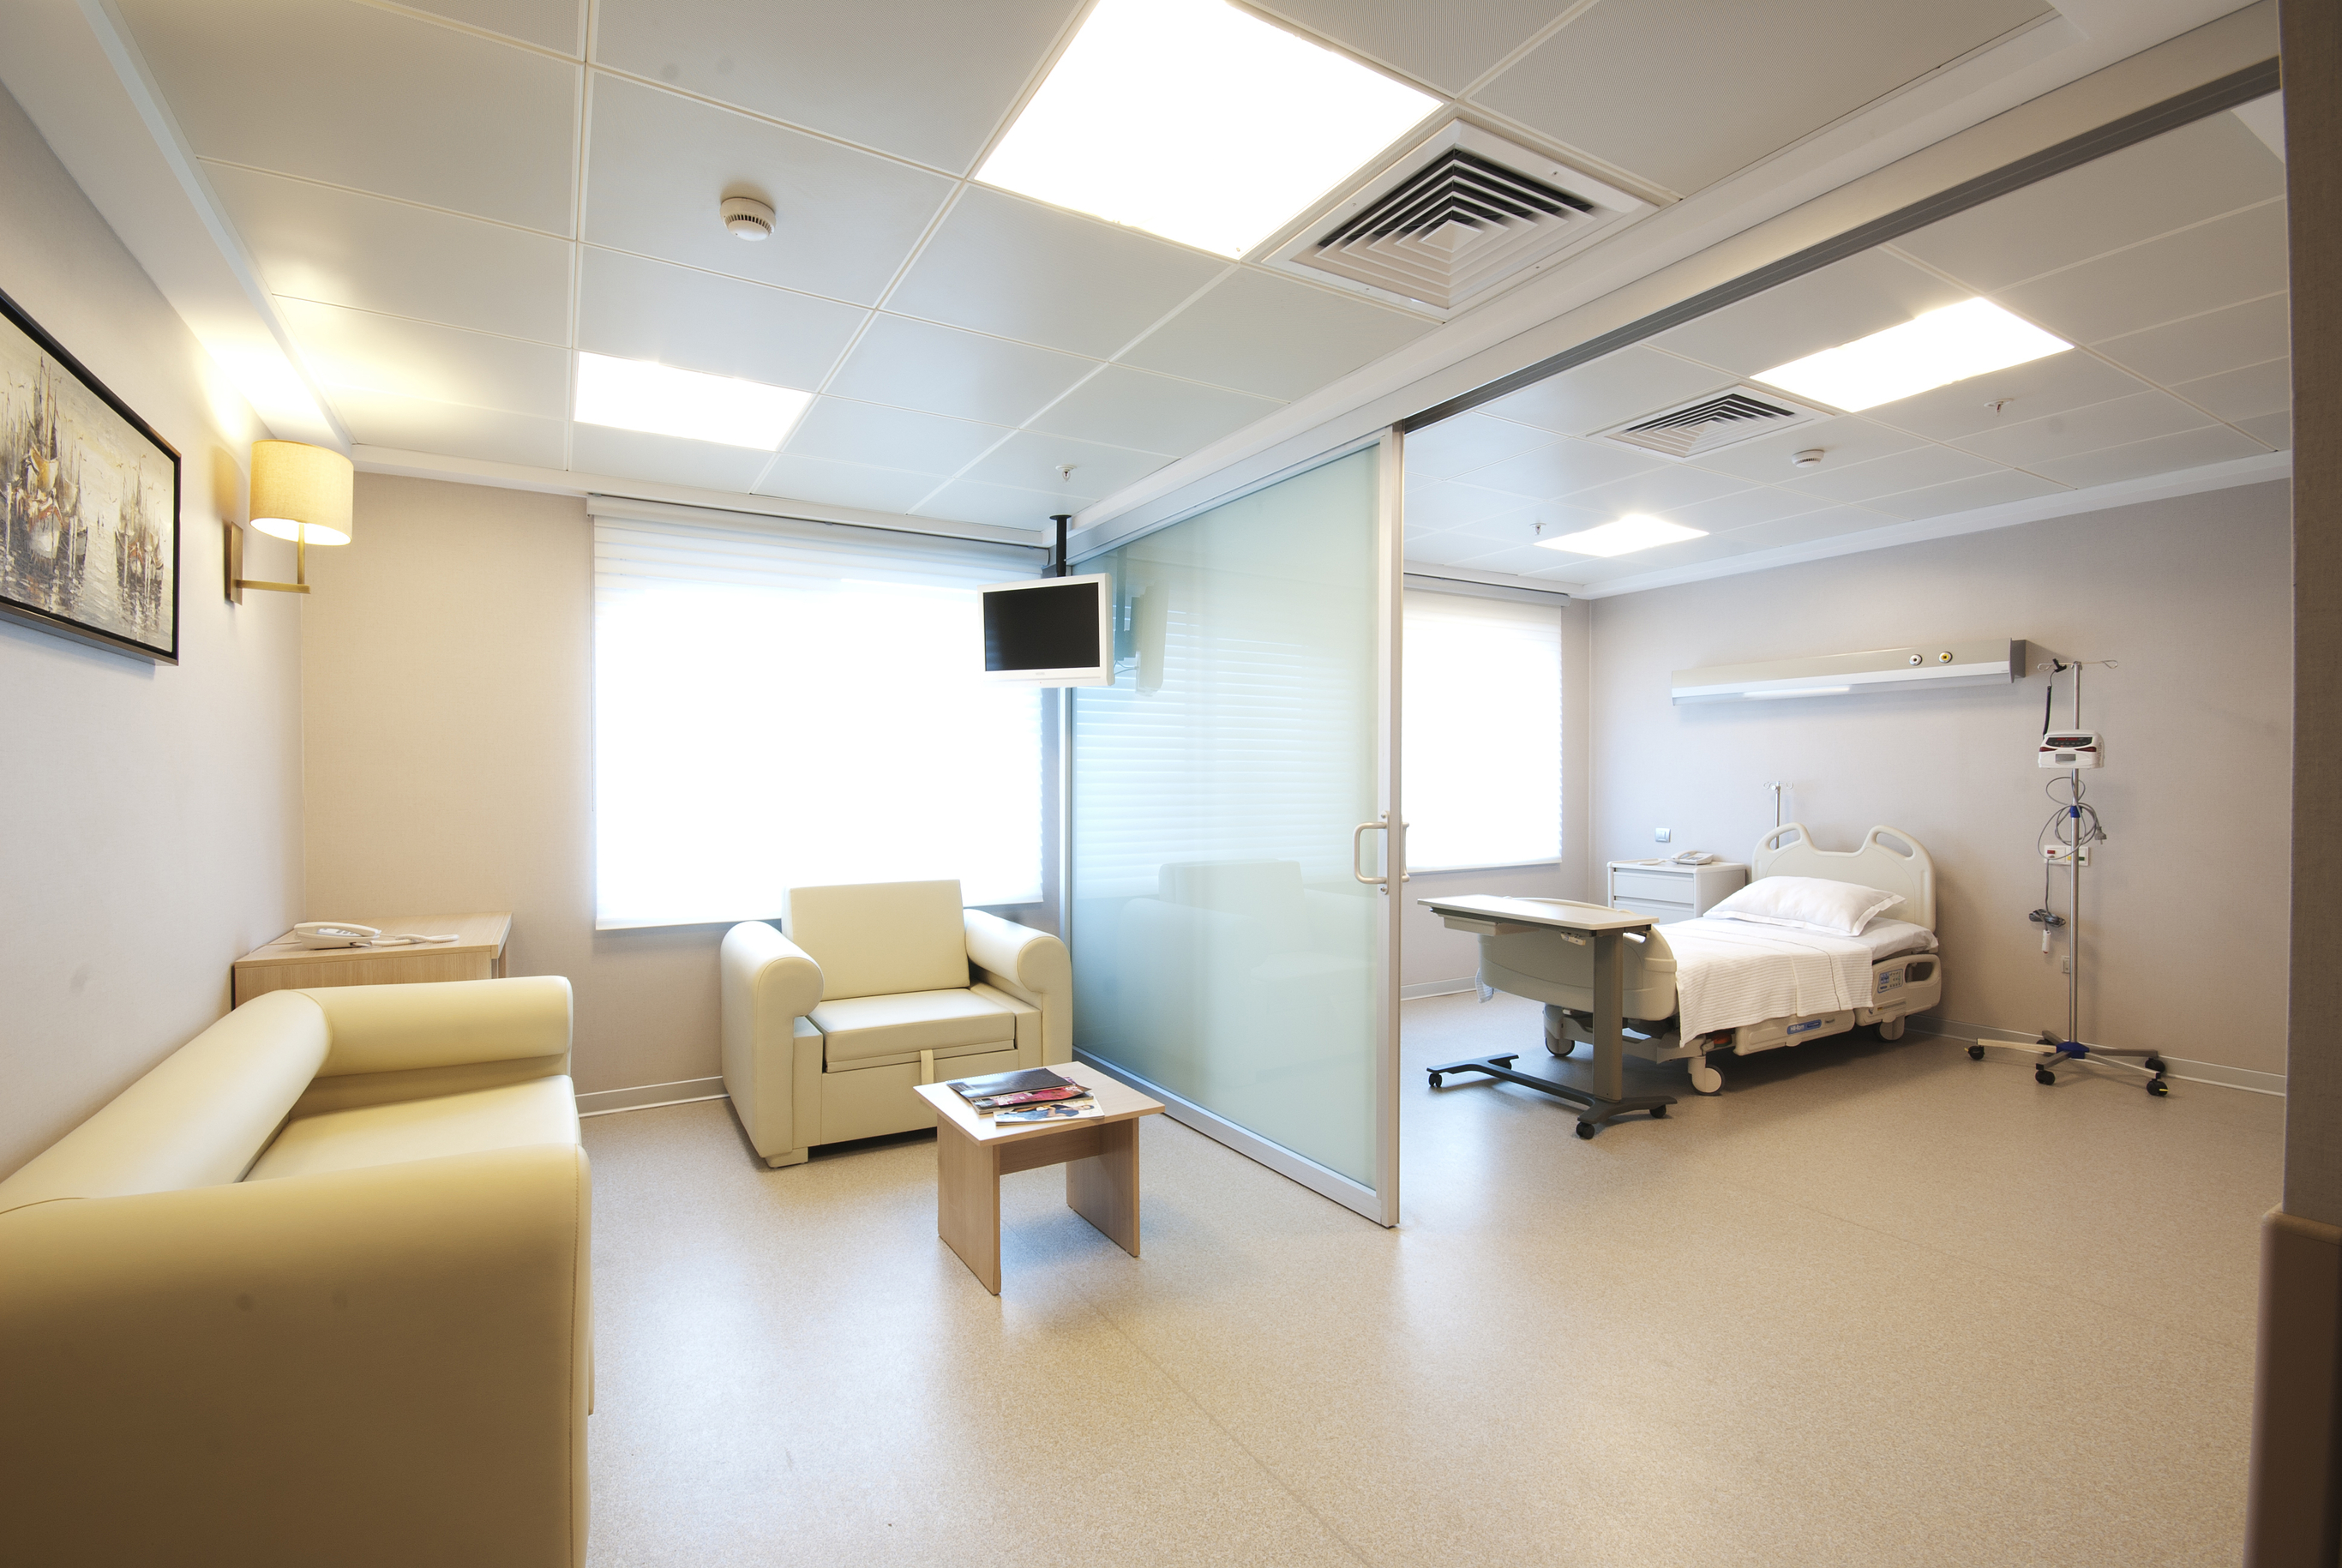 Innovative Methods of Combating Hospital-Acquired Infections